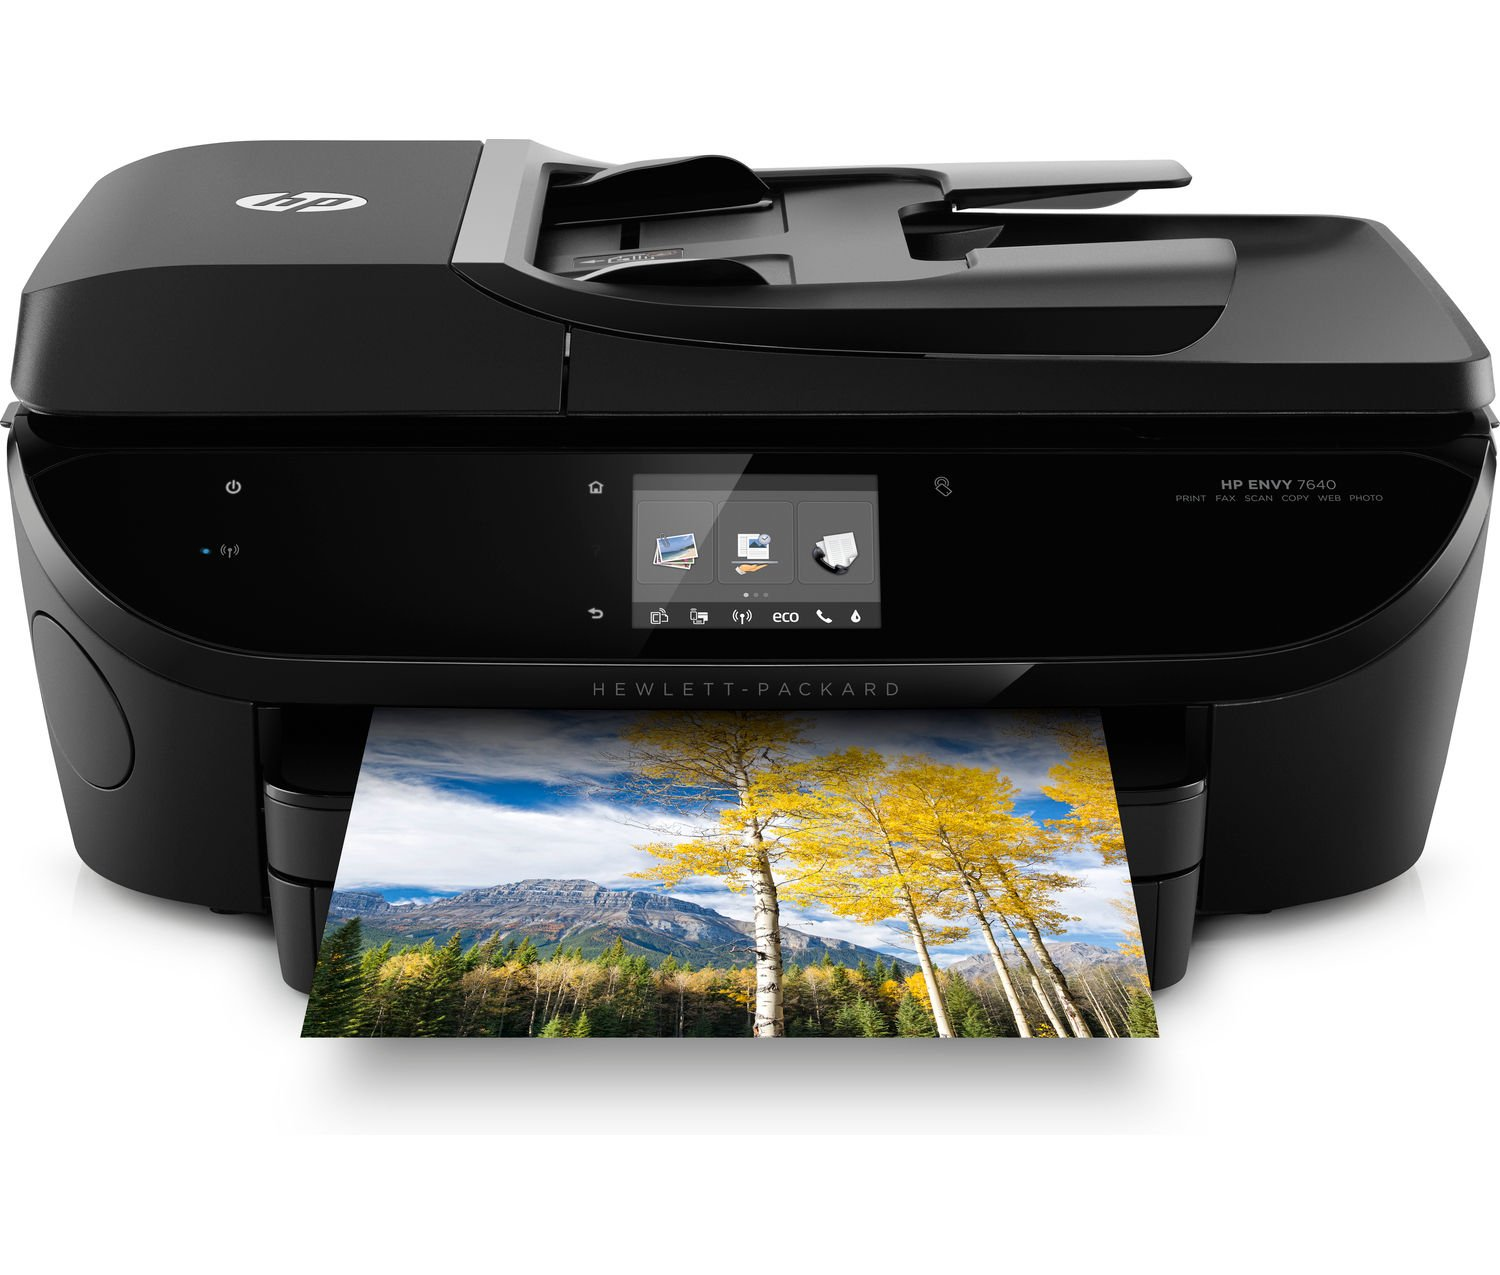 HP ENVY 7644 e-All-in-One Photo Quality Inkjet Printer, wireless printing, mobile phone compatible, in black (Renewed) by HP (Image #1)